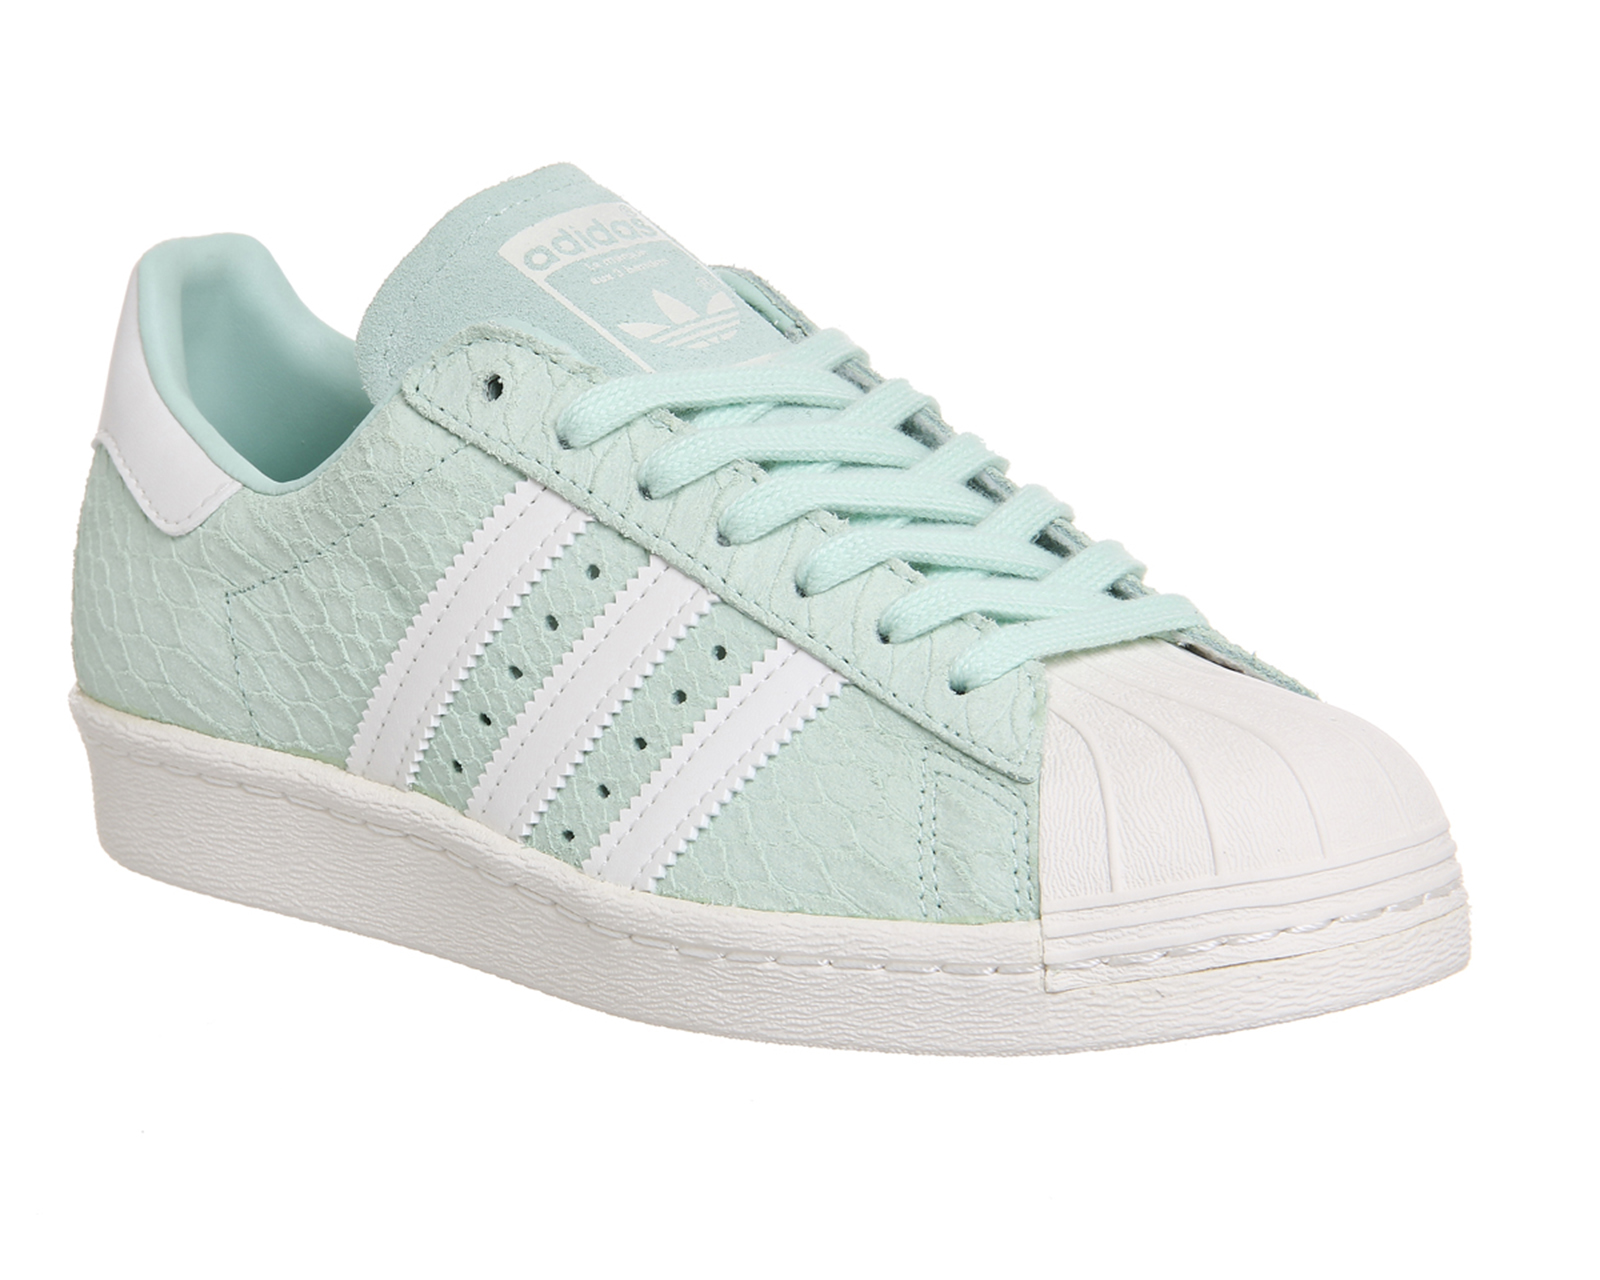 Adidas Superstar Blanco Y Verde